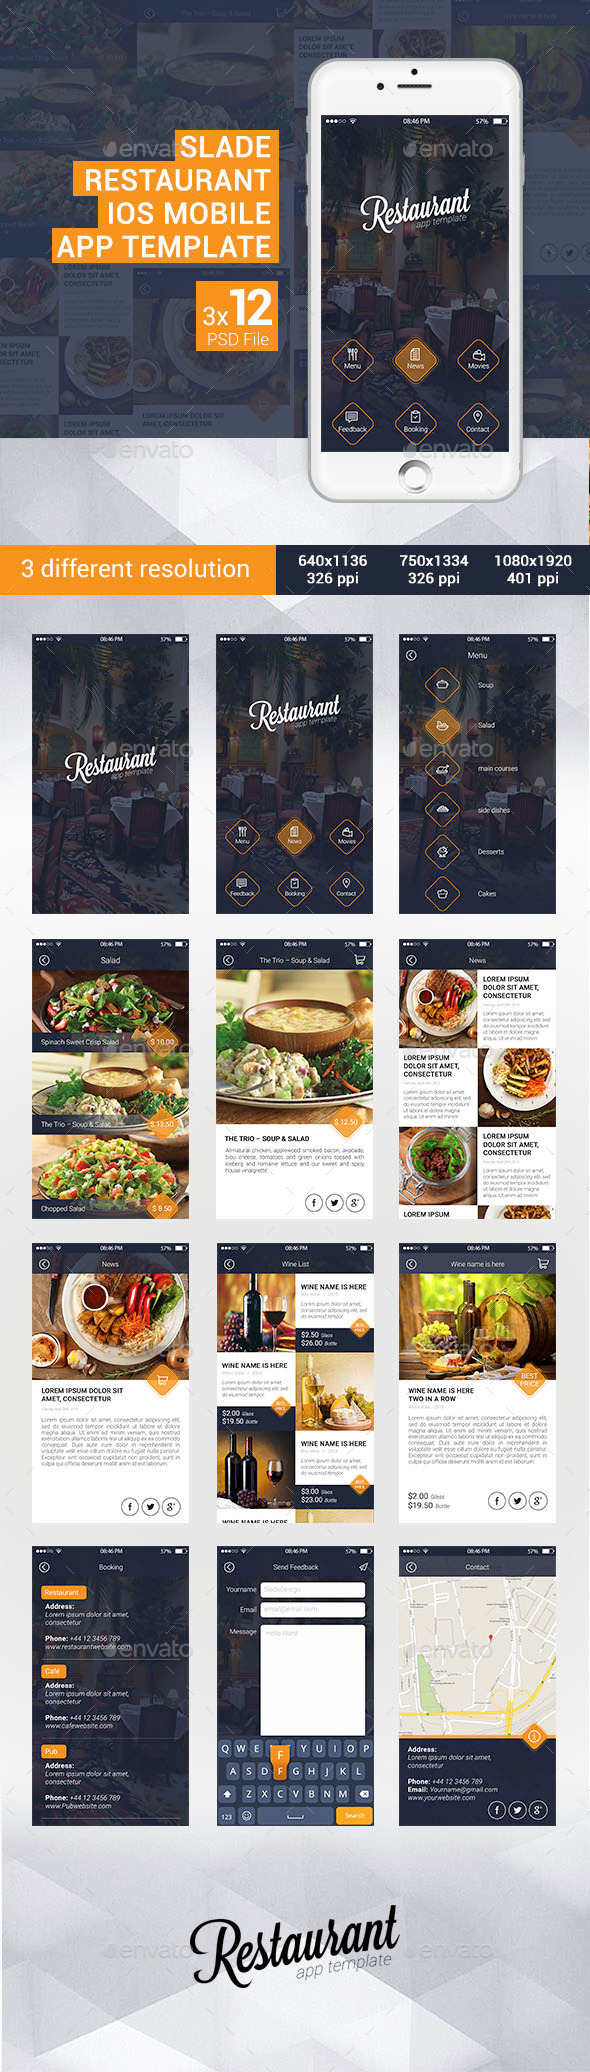 Slade Restaurant iOS Mobile App Template by SladeDesign | GraphicRiver